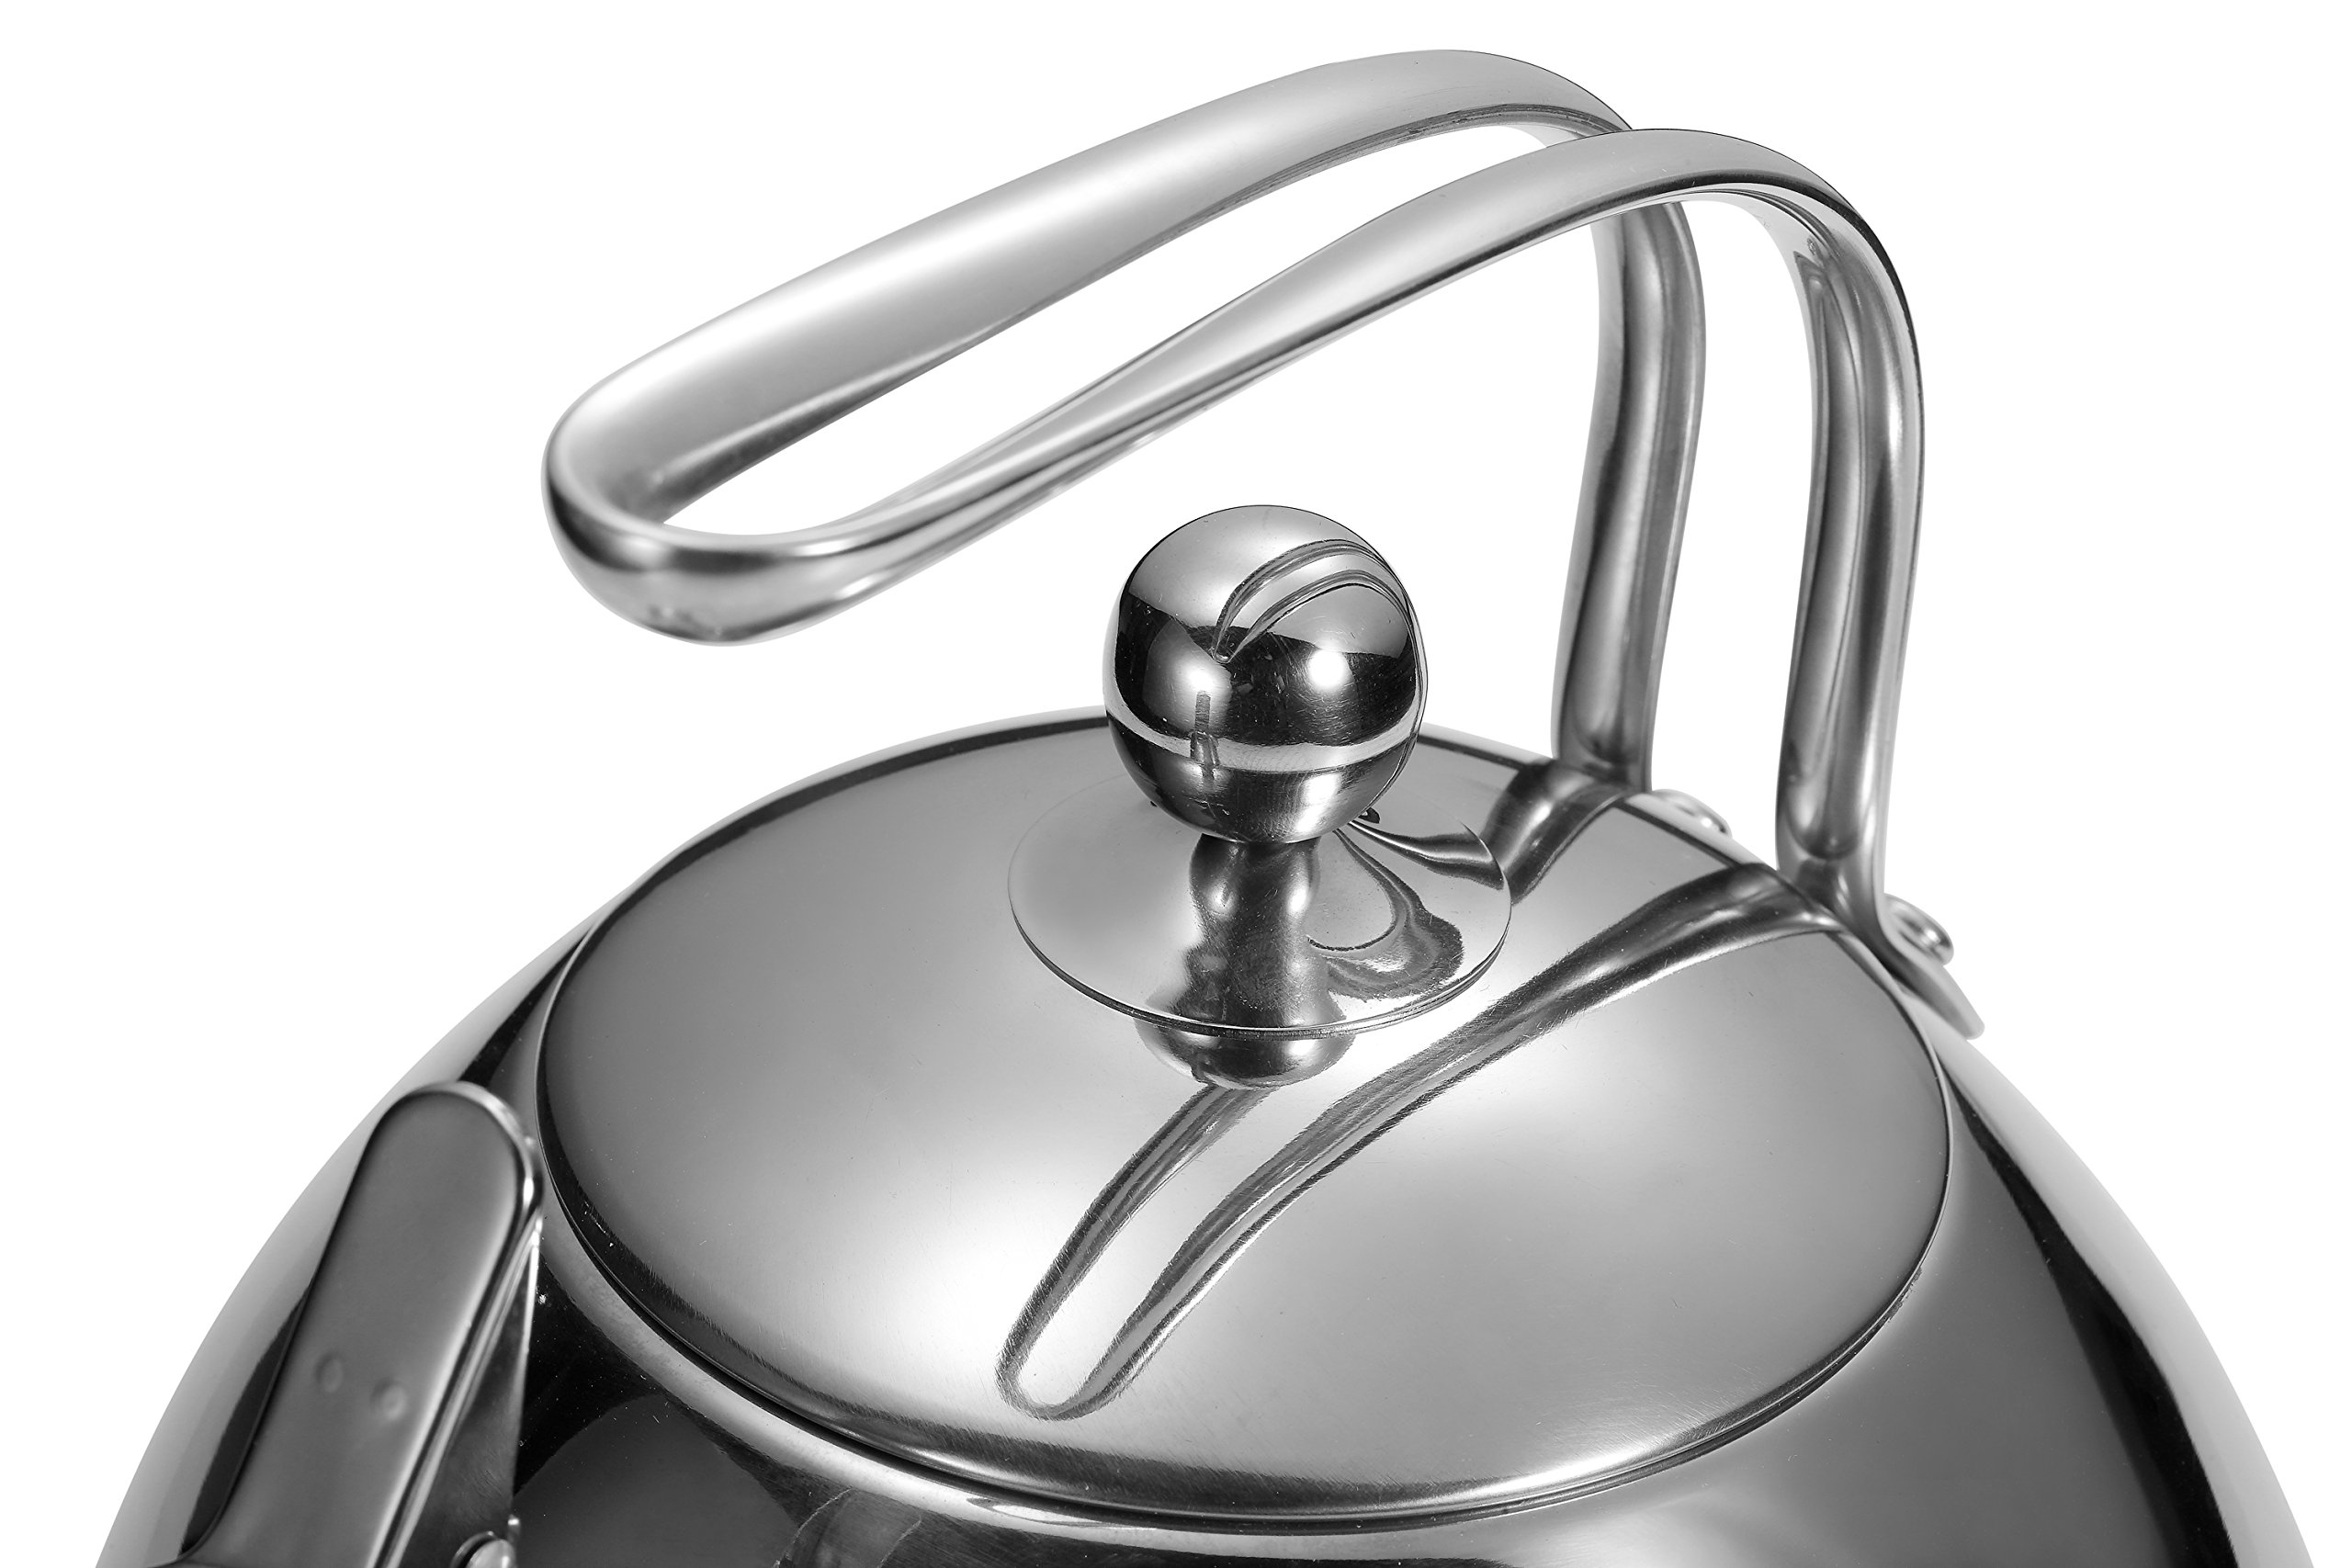 Injoy Whistling Tea Kettle 304 Stainless Steel Teapot Classic Cookware in LFGB/FDA Standard for All Stovetops - 1  Insulation Pad Included, 2.64 Quart/2.5 L, Silver by InJoy (Image #3)